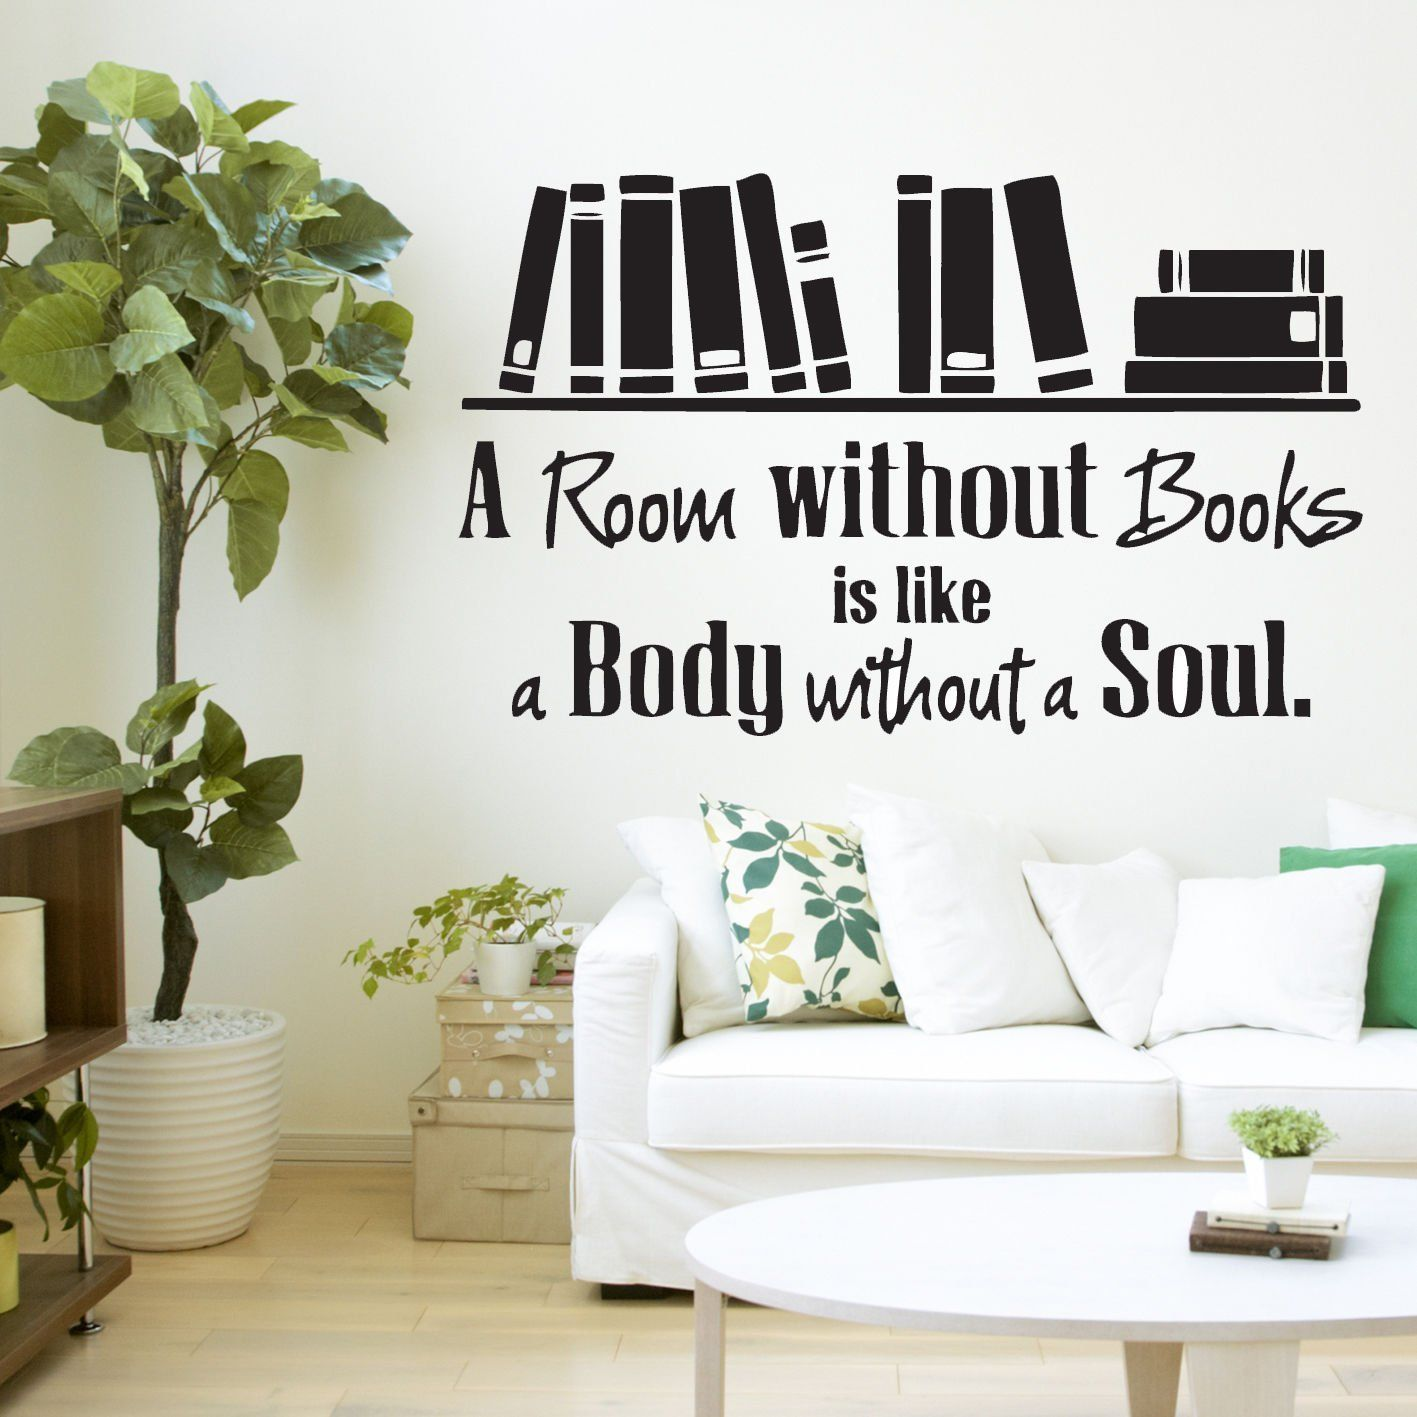 wall art quotes amazon wall art quotes amazon a room without books quote library wall sticker decal vinyl wall